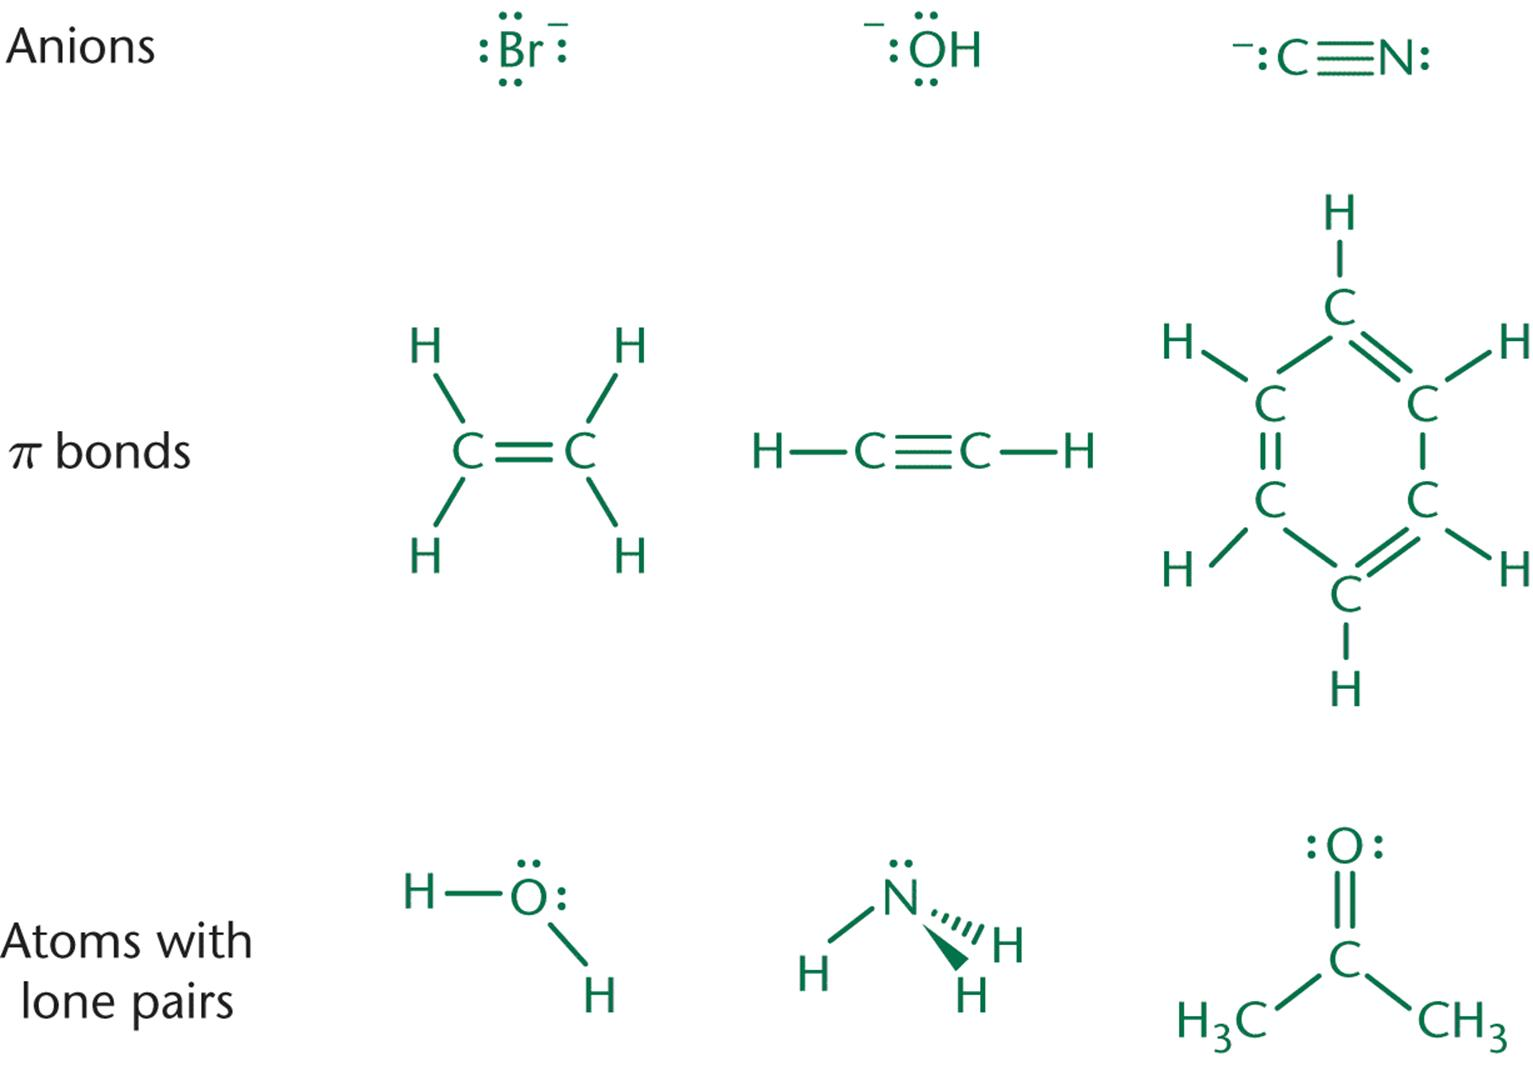 Nucleophiles Electrophiles And Leaving Groups